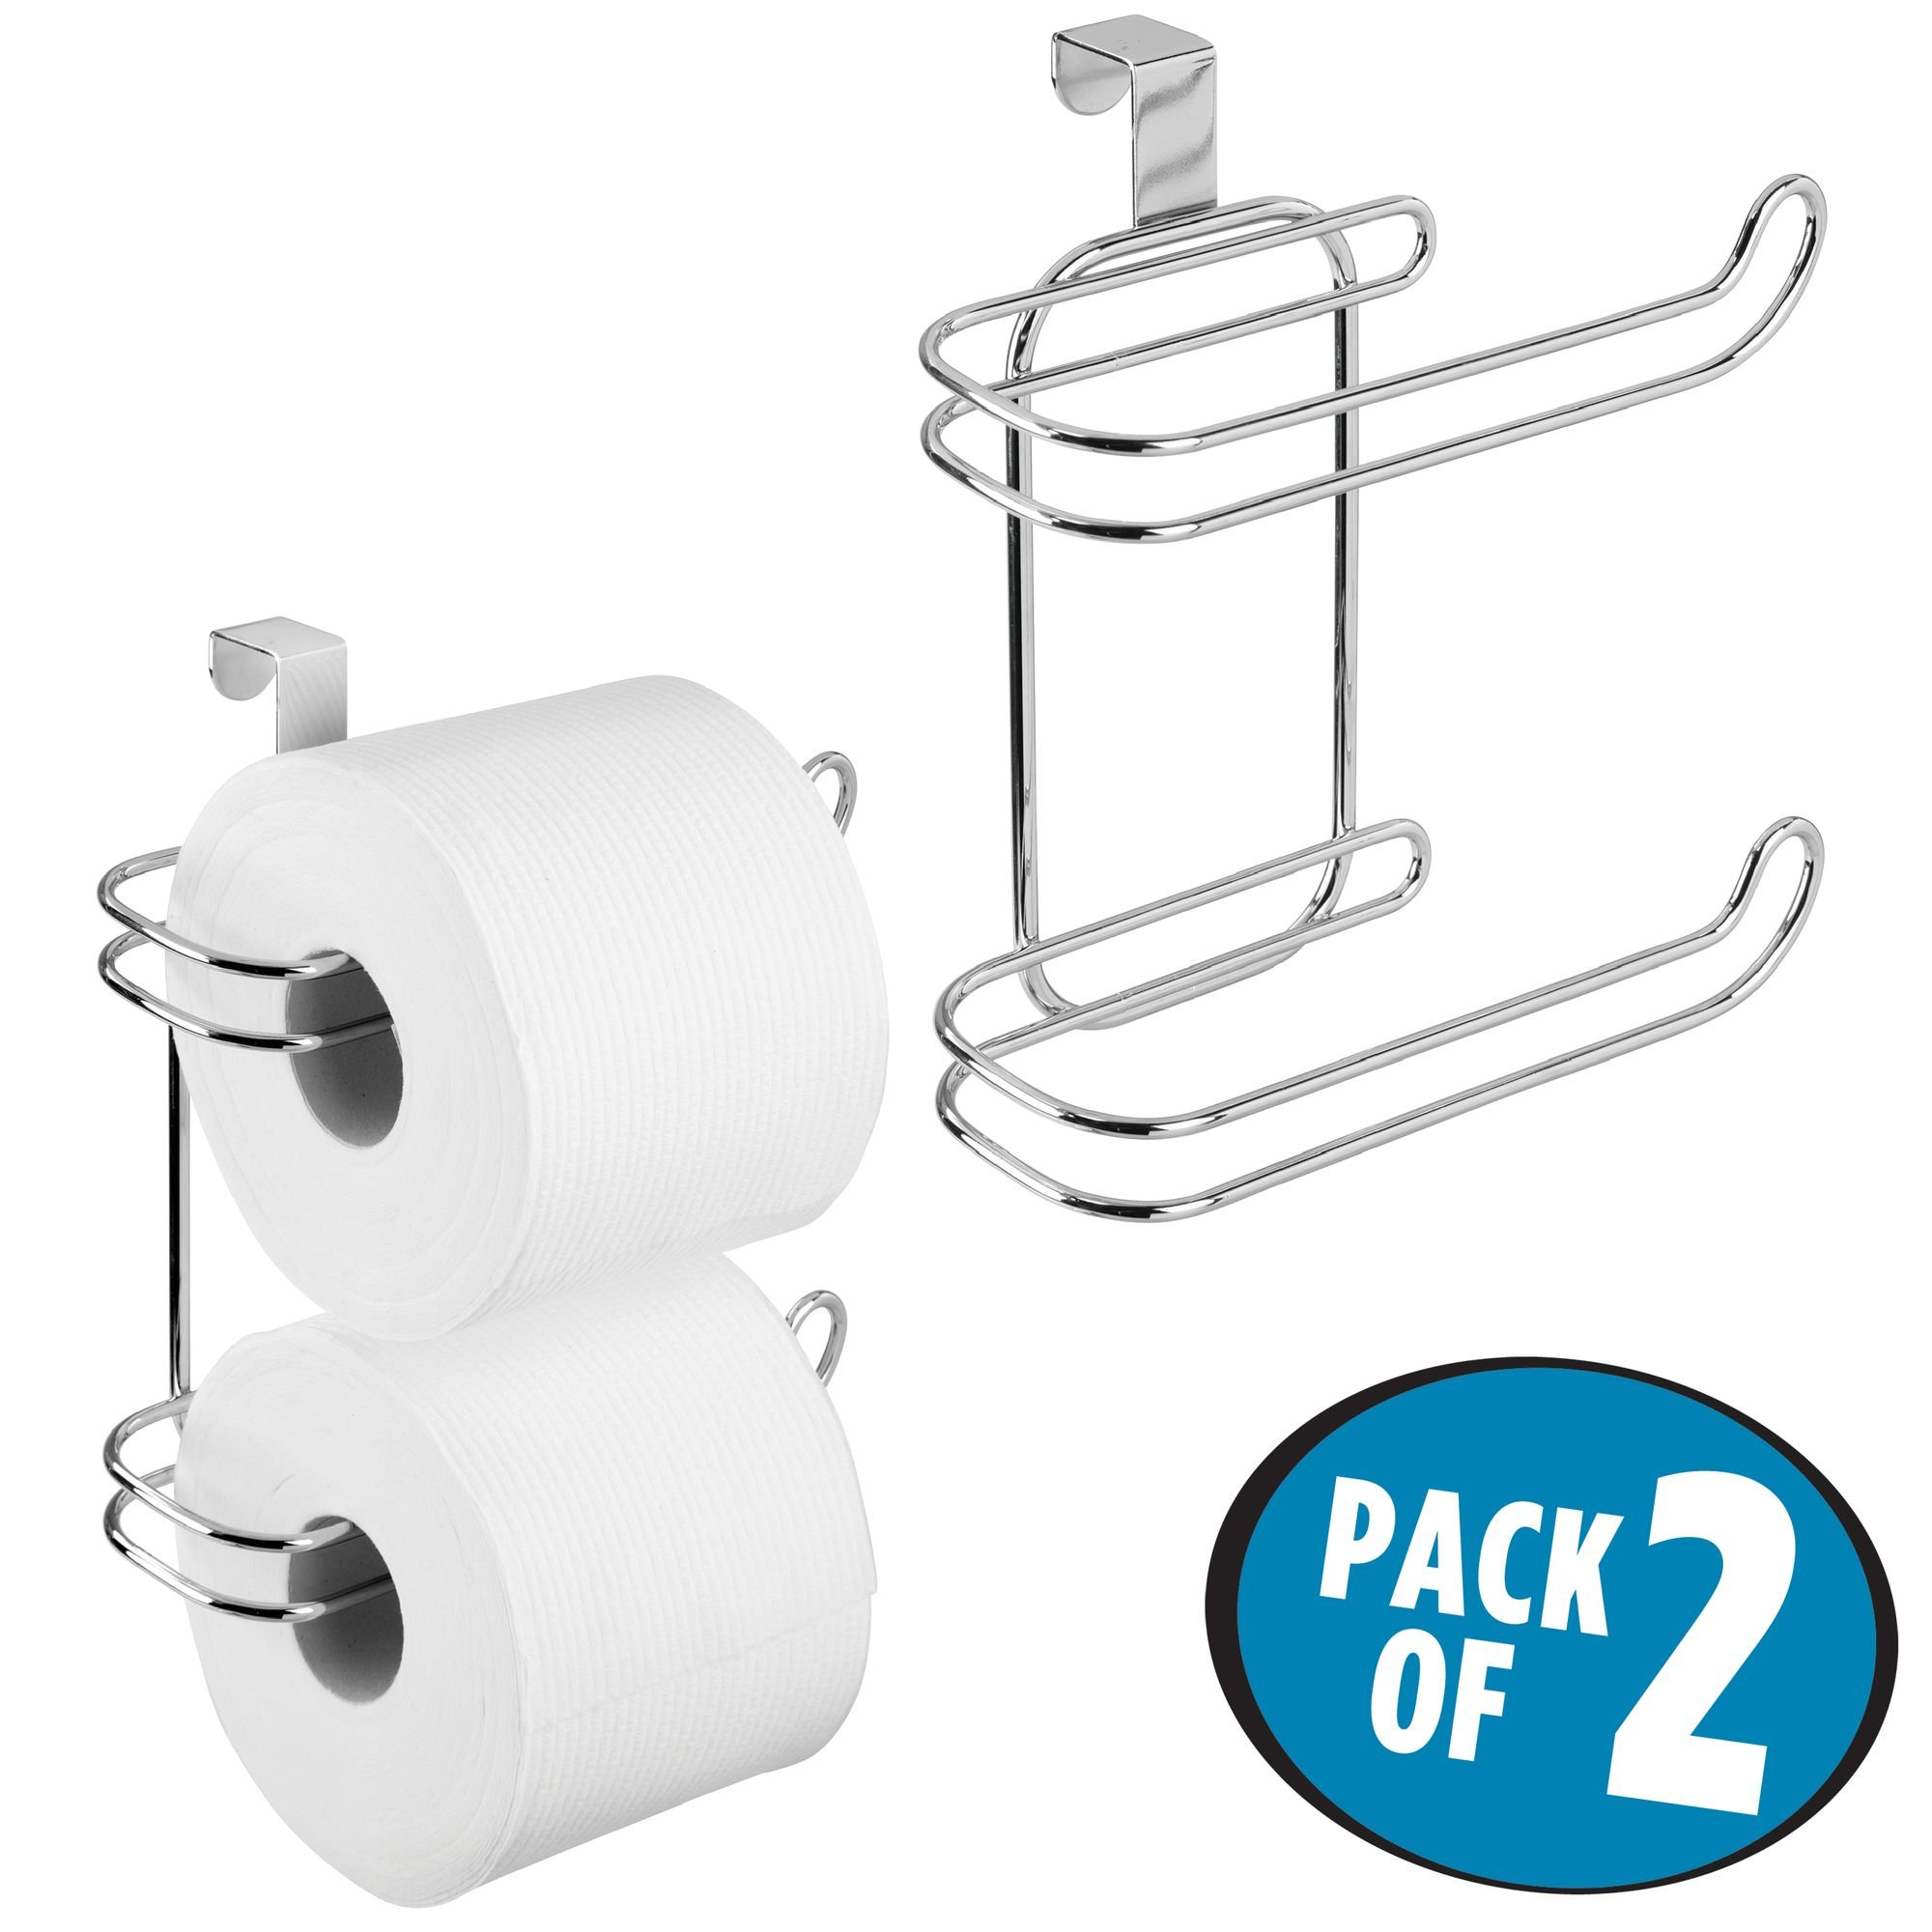 mDesign Compact Hanging Over the Tank Toilet Tissue Paper Roll Holder and Dispenser for Bathroom Storage - Holds 1 Extra Roll – Space Saving Design - Pack of 2, Durable Metal Wire in Chrome Finish by mDesign (Image #1)